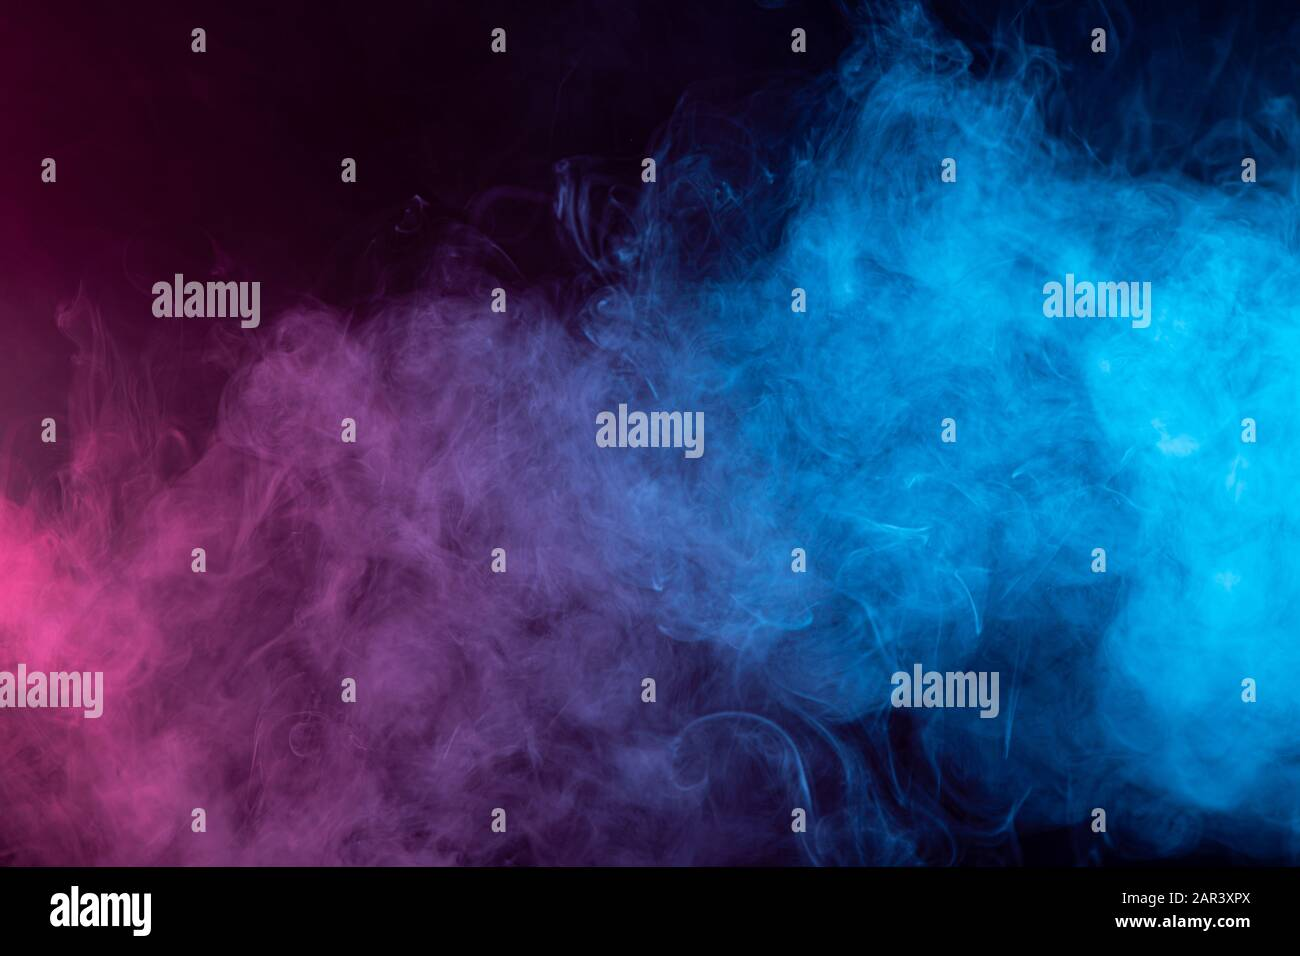 Toxic Movement Of Color Smoke Abstract On Black Background Fire Design Fantasy Blue And Red Smoke Abstract On Black Background Stock Photo Alamy